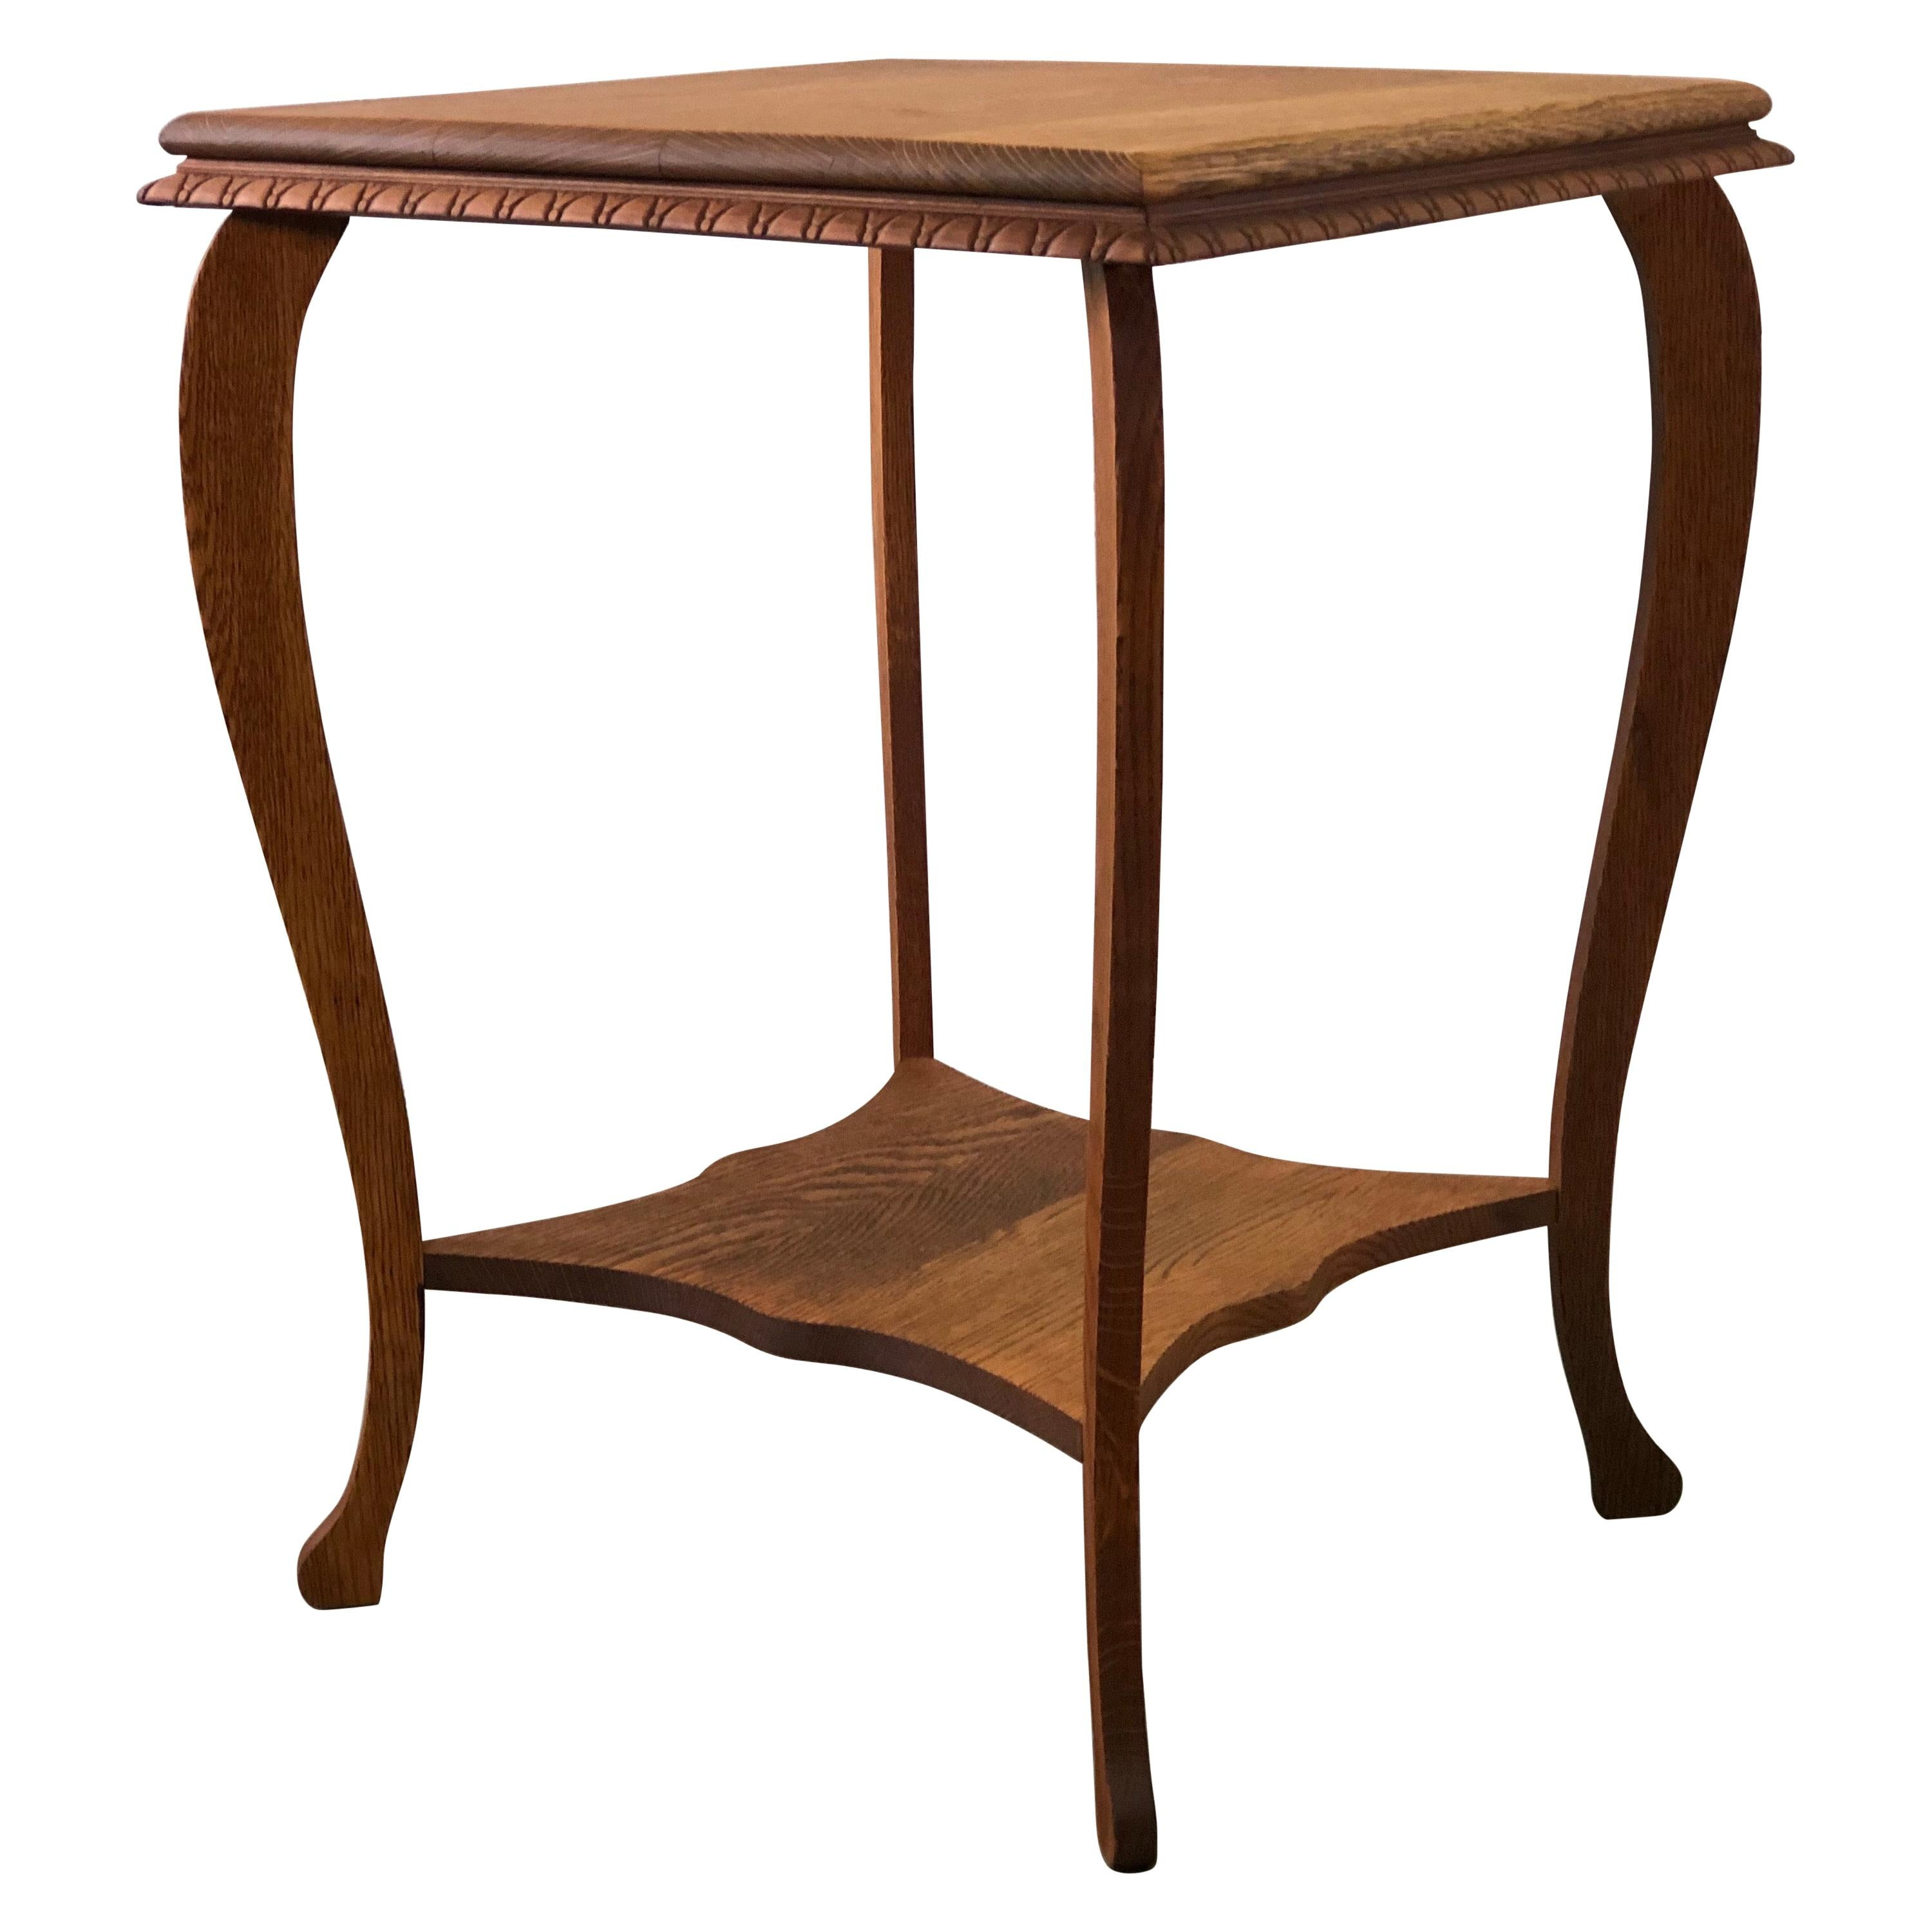 Vintage Square Oak Wood Side Table with Curved Legs